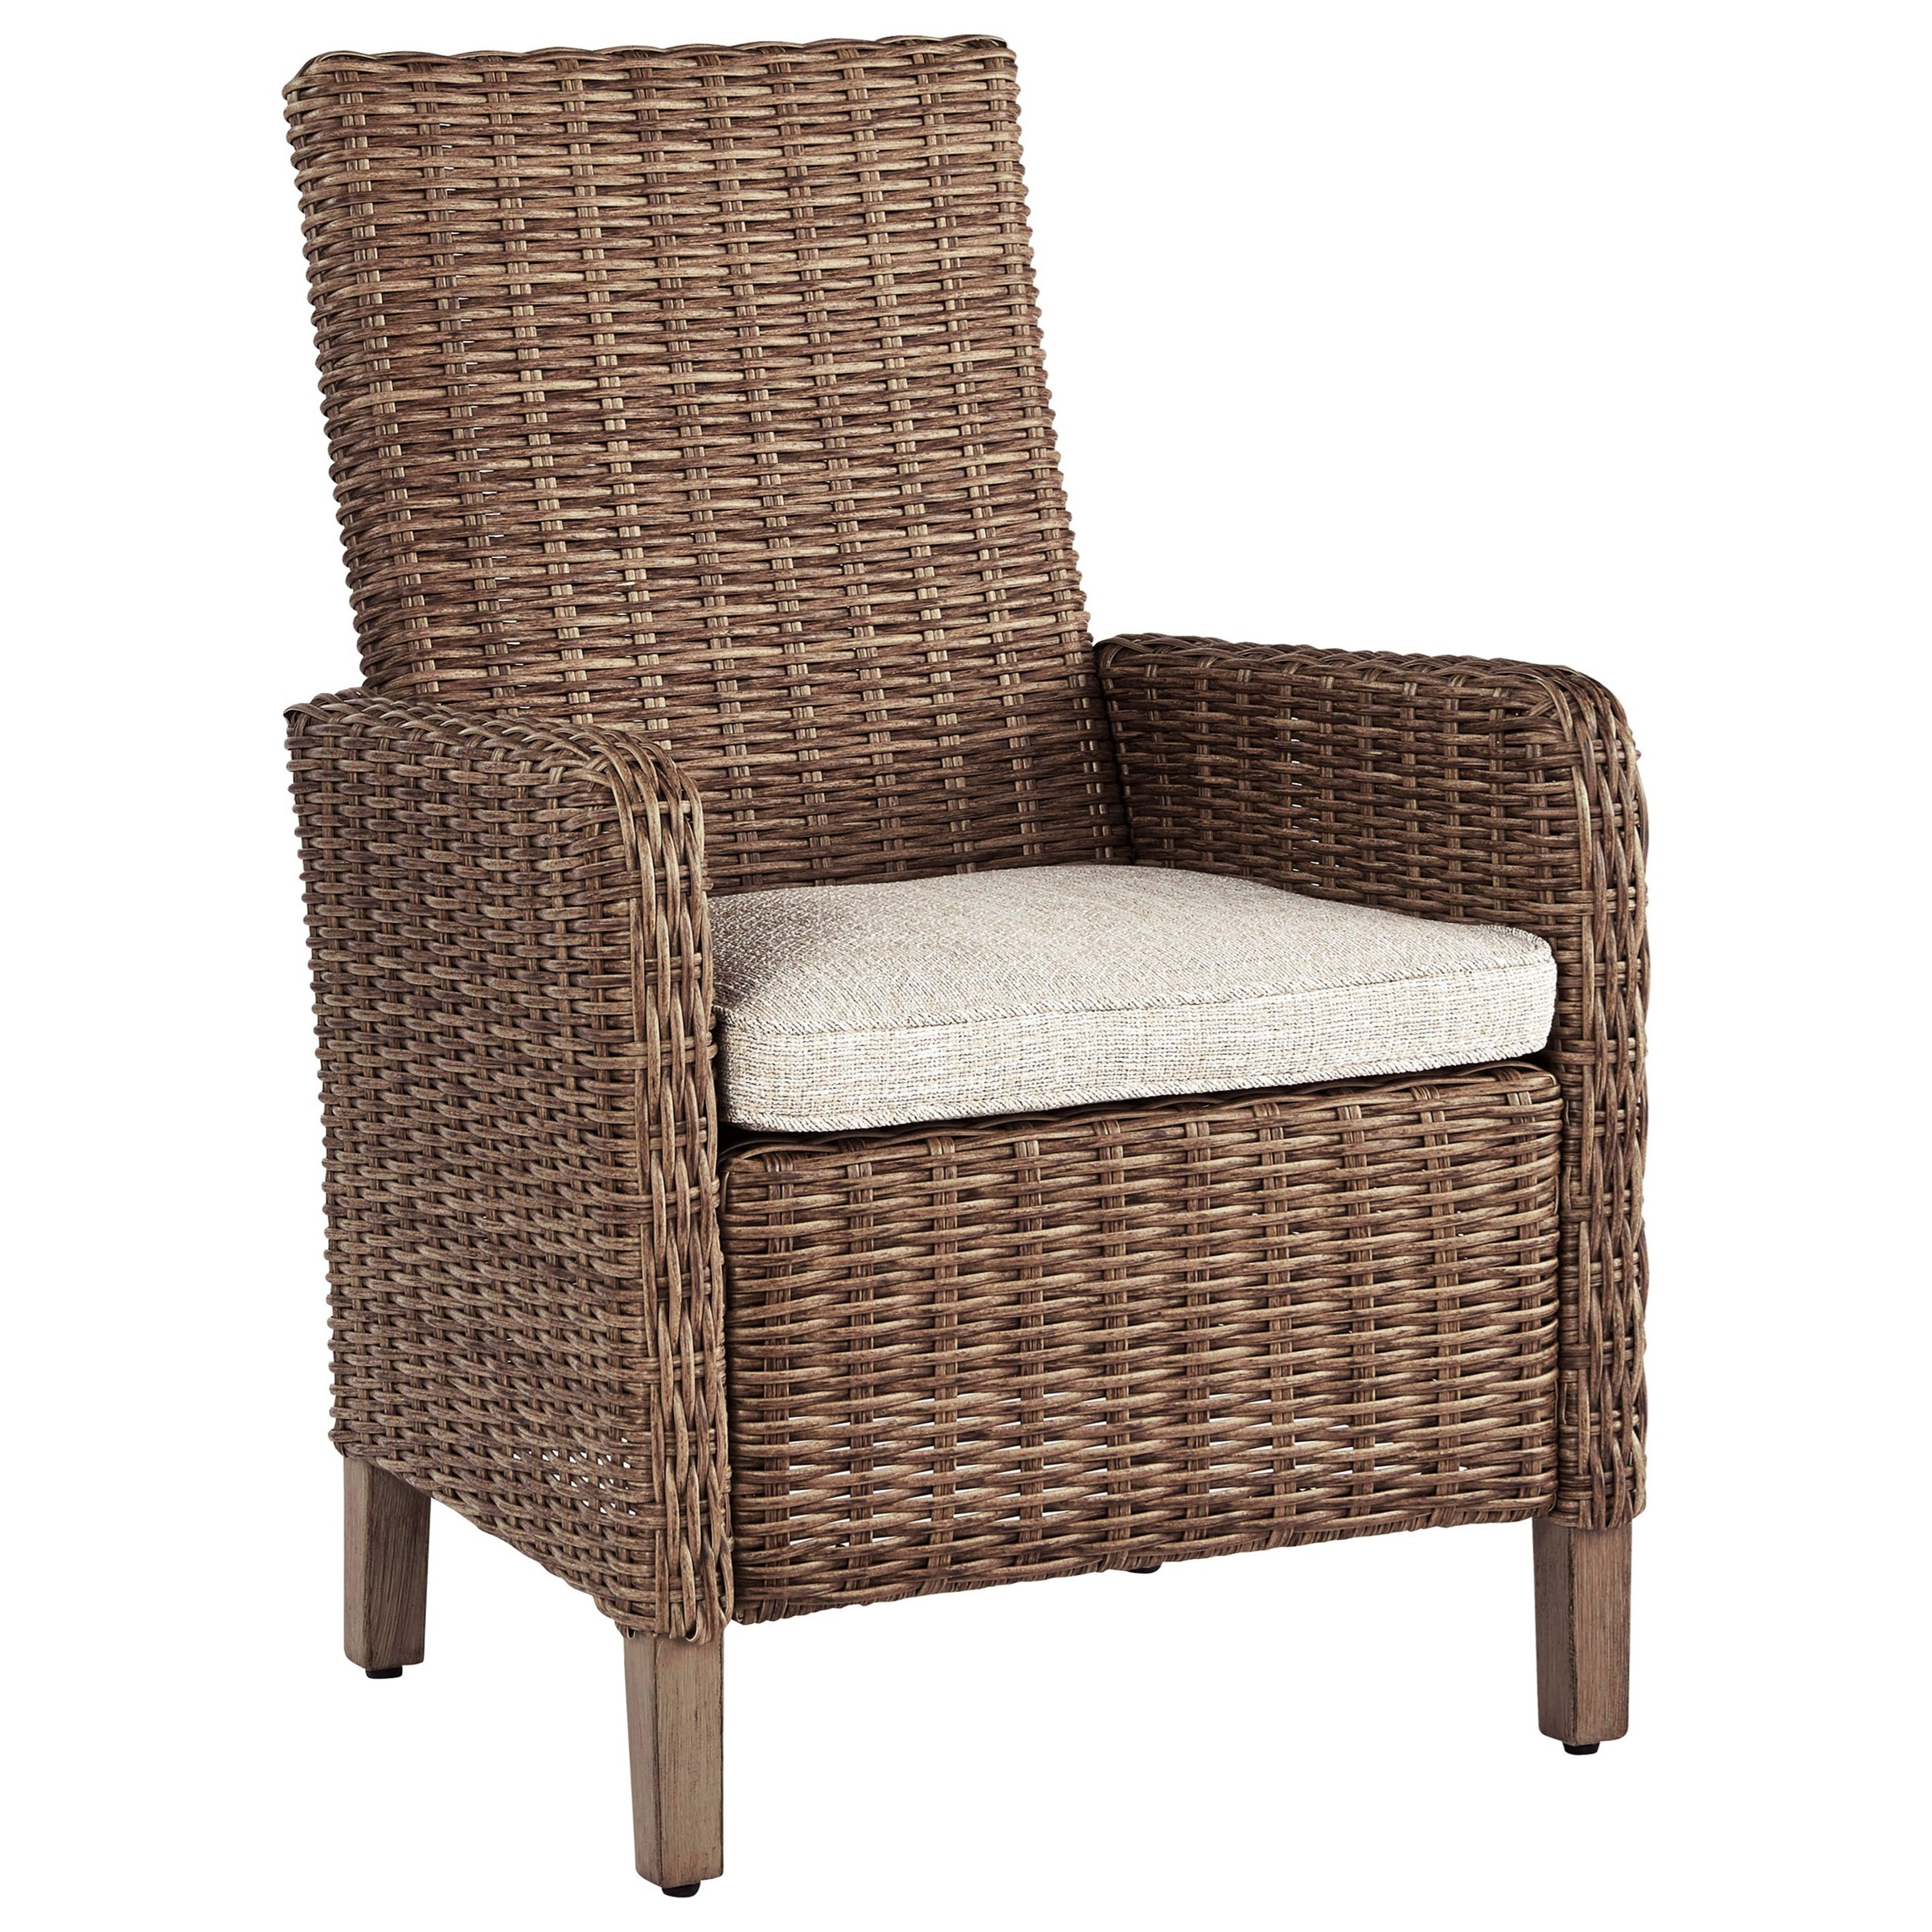 Beachcroft Arm Chair with Cushion by Signature Design by Ashley at Northeast Factory Direct